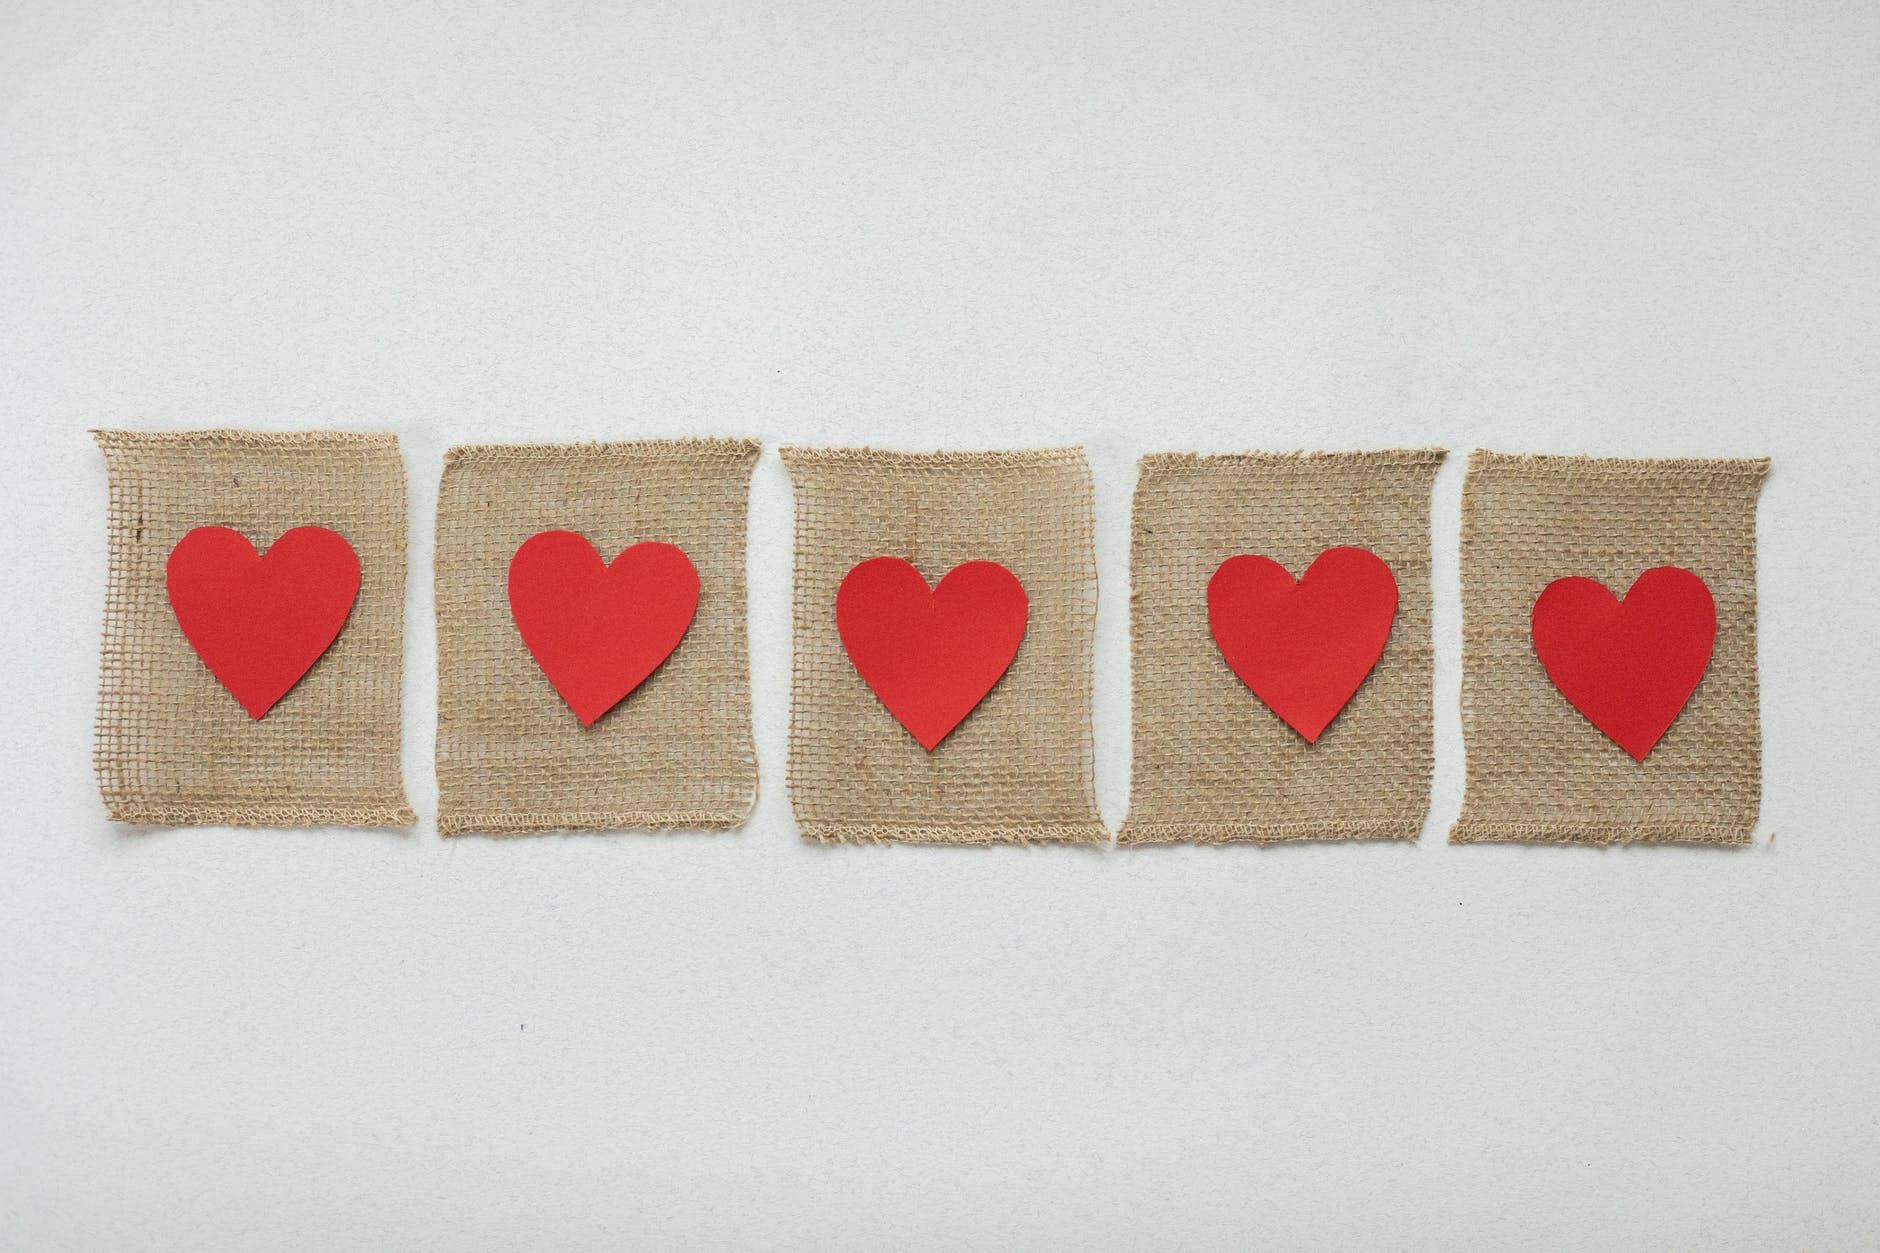 pieces of fabric with red hearts